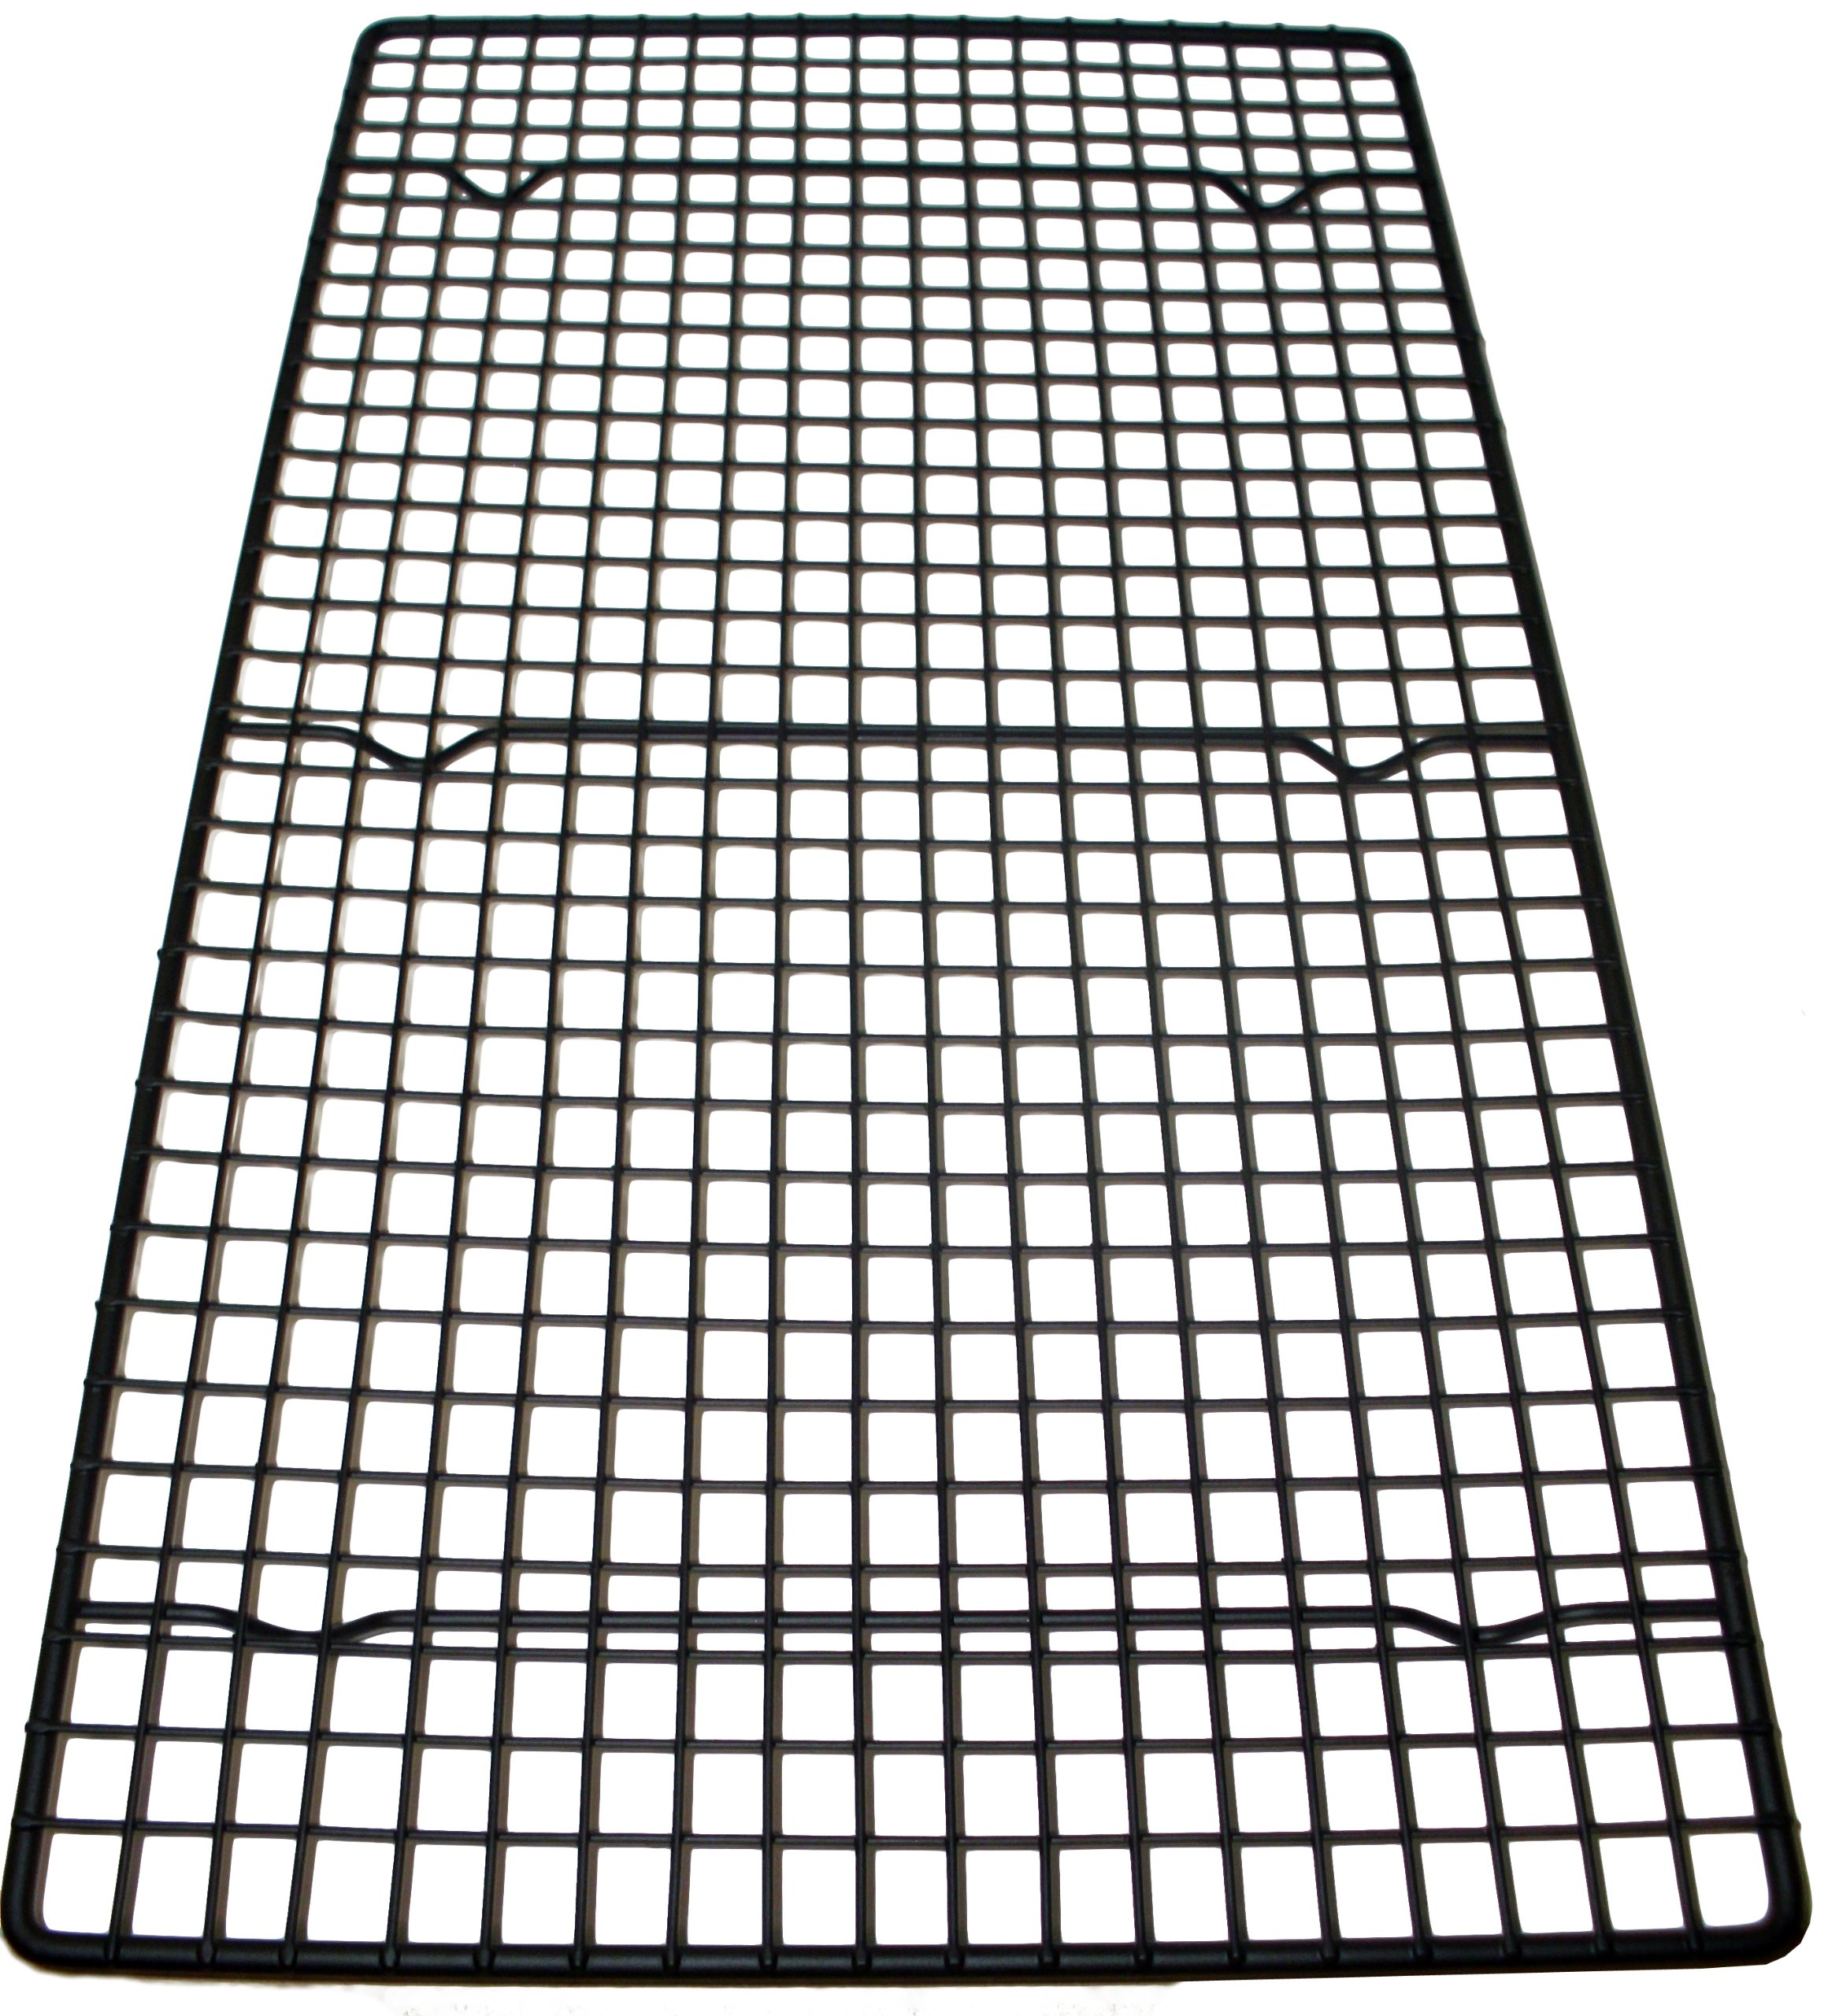 Southern Homewares Oversized Wire Baking Cooling Non-Stick Rack, 18'' x 10'', Black Cookie Pan